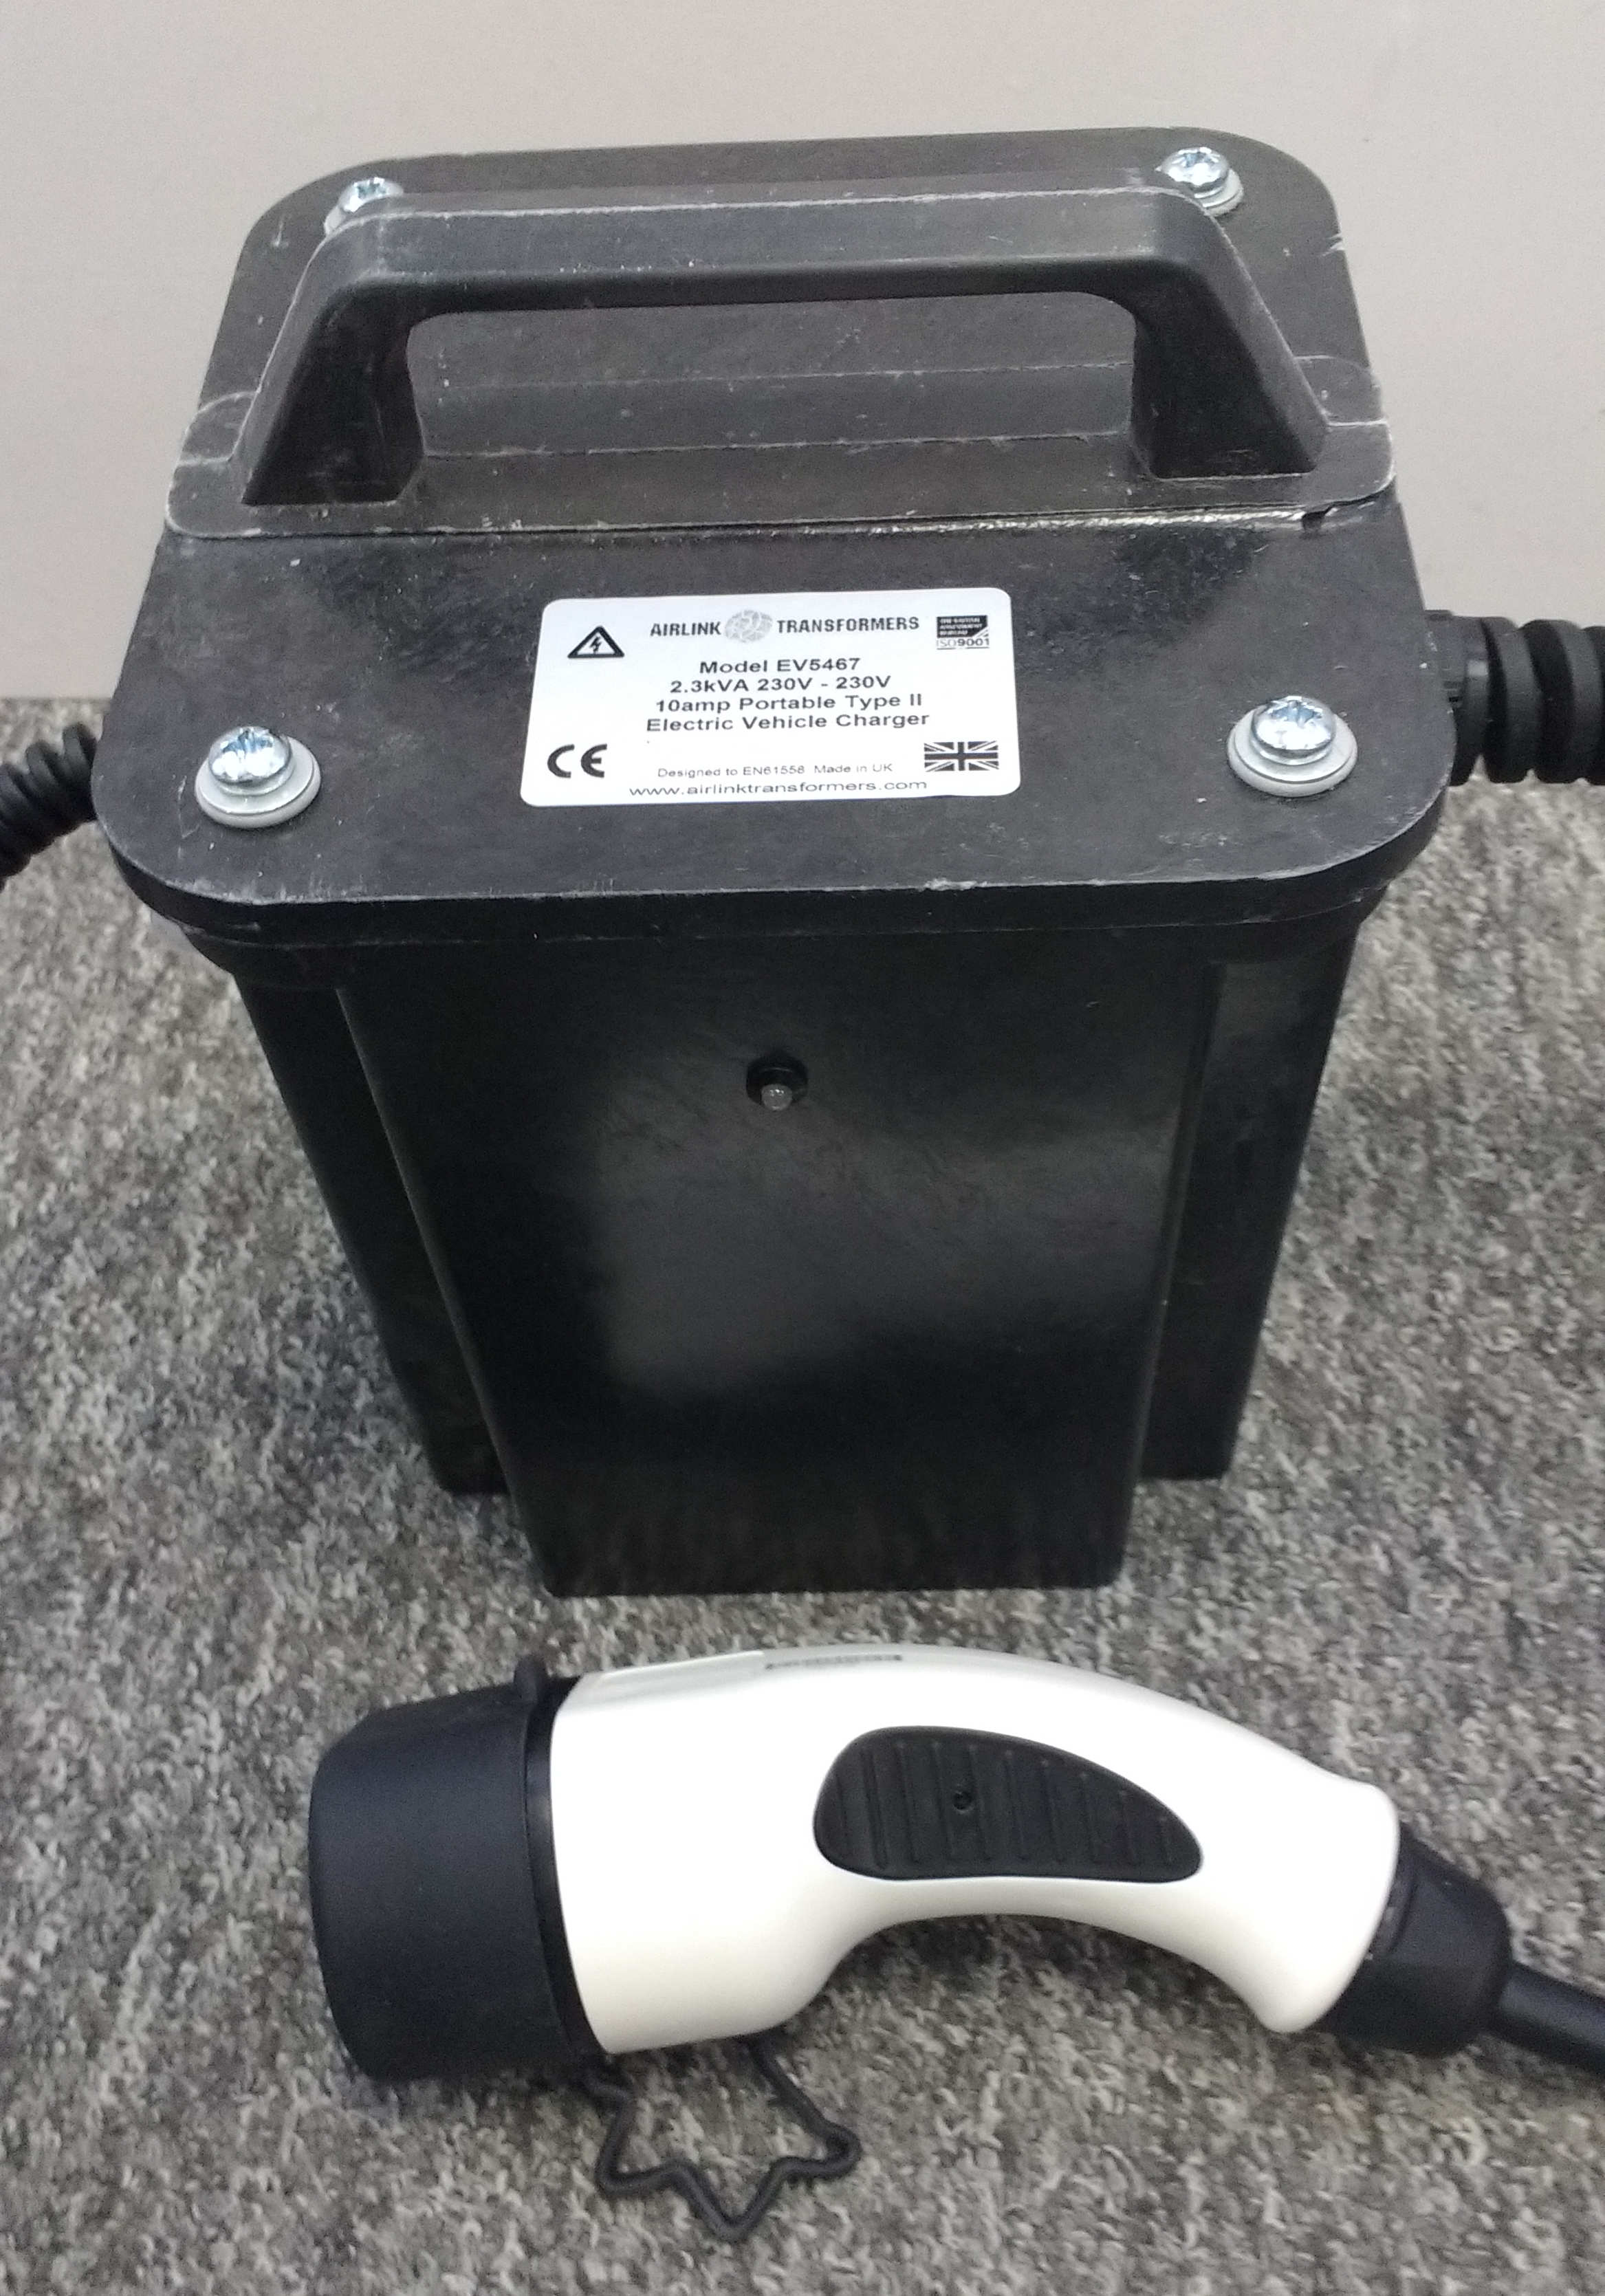 Electric Vehicle Transformer